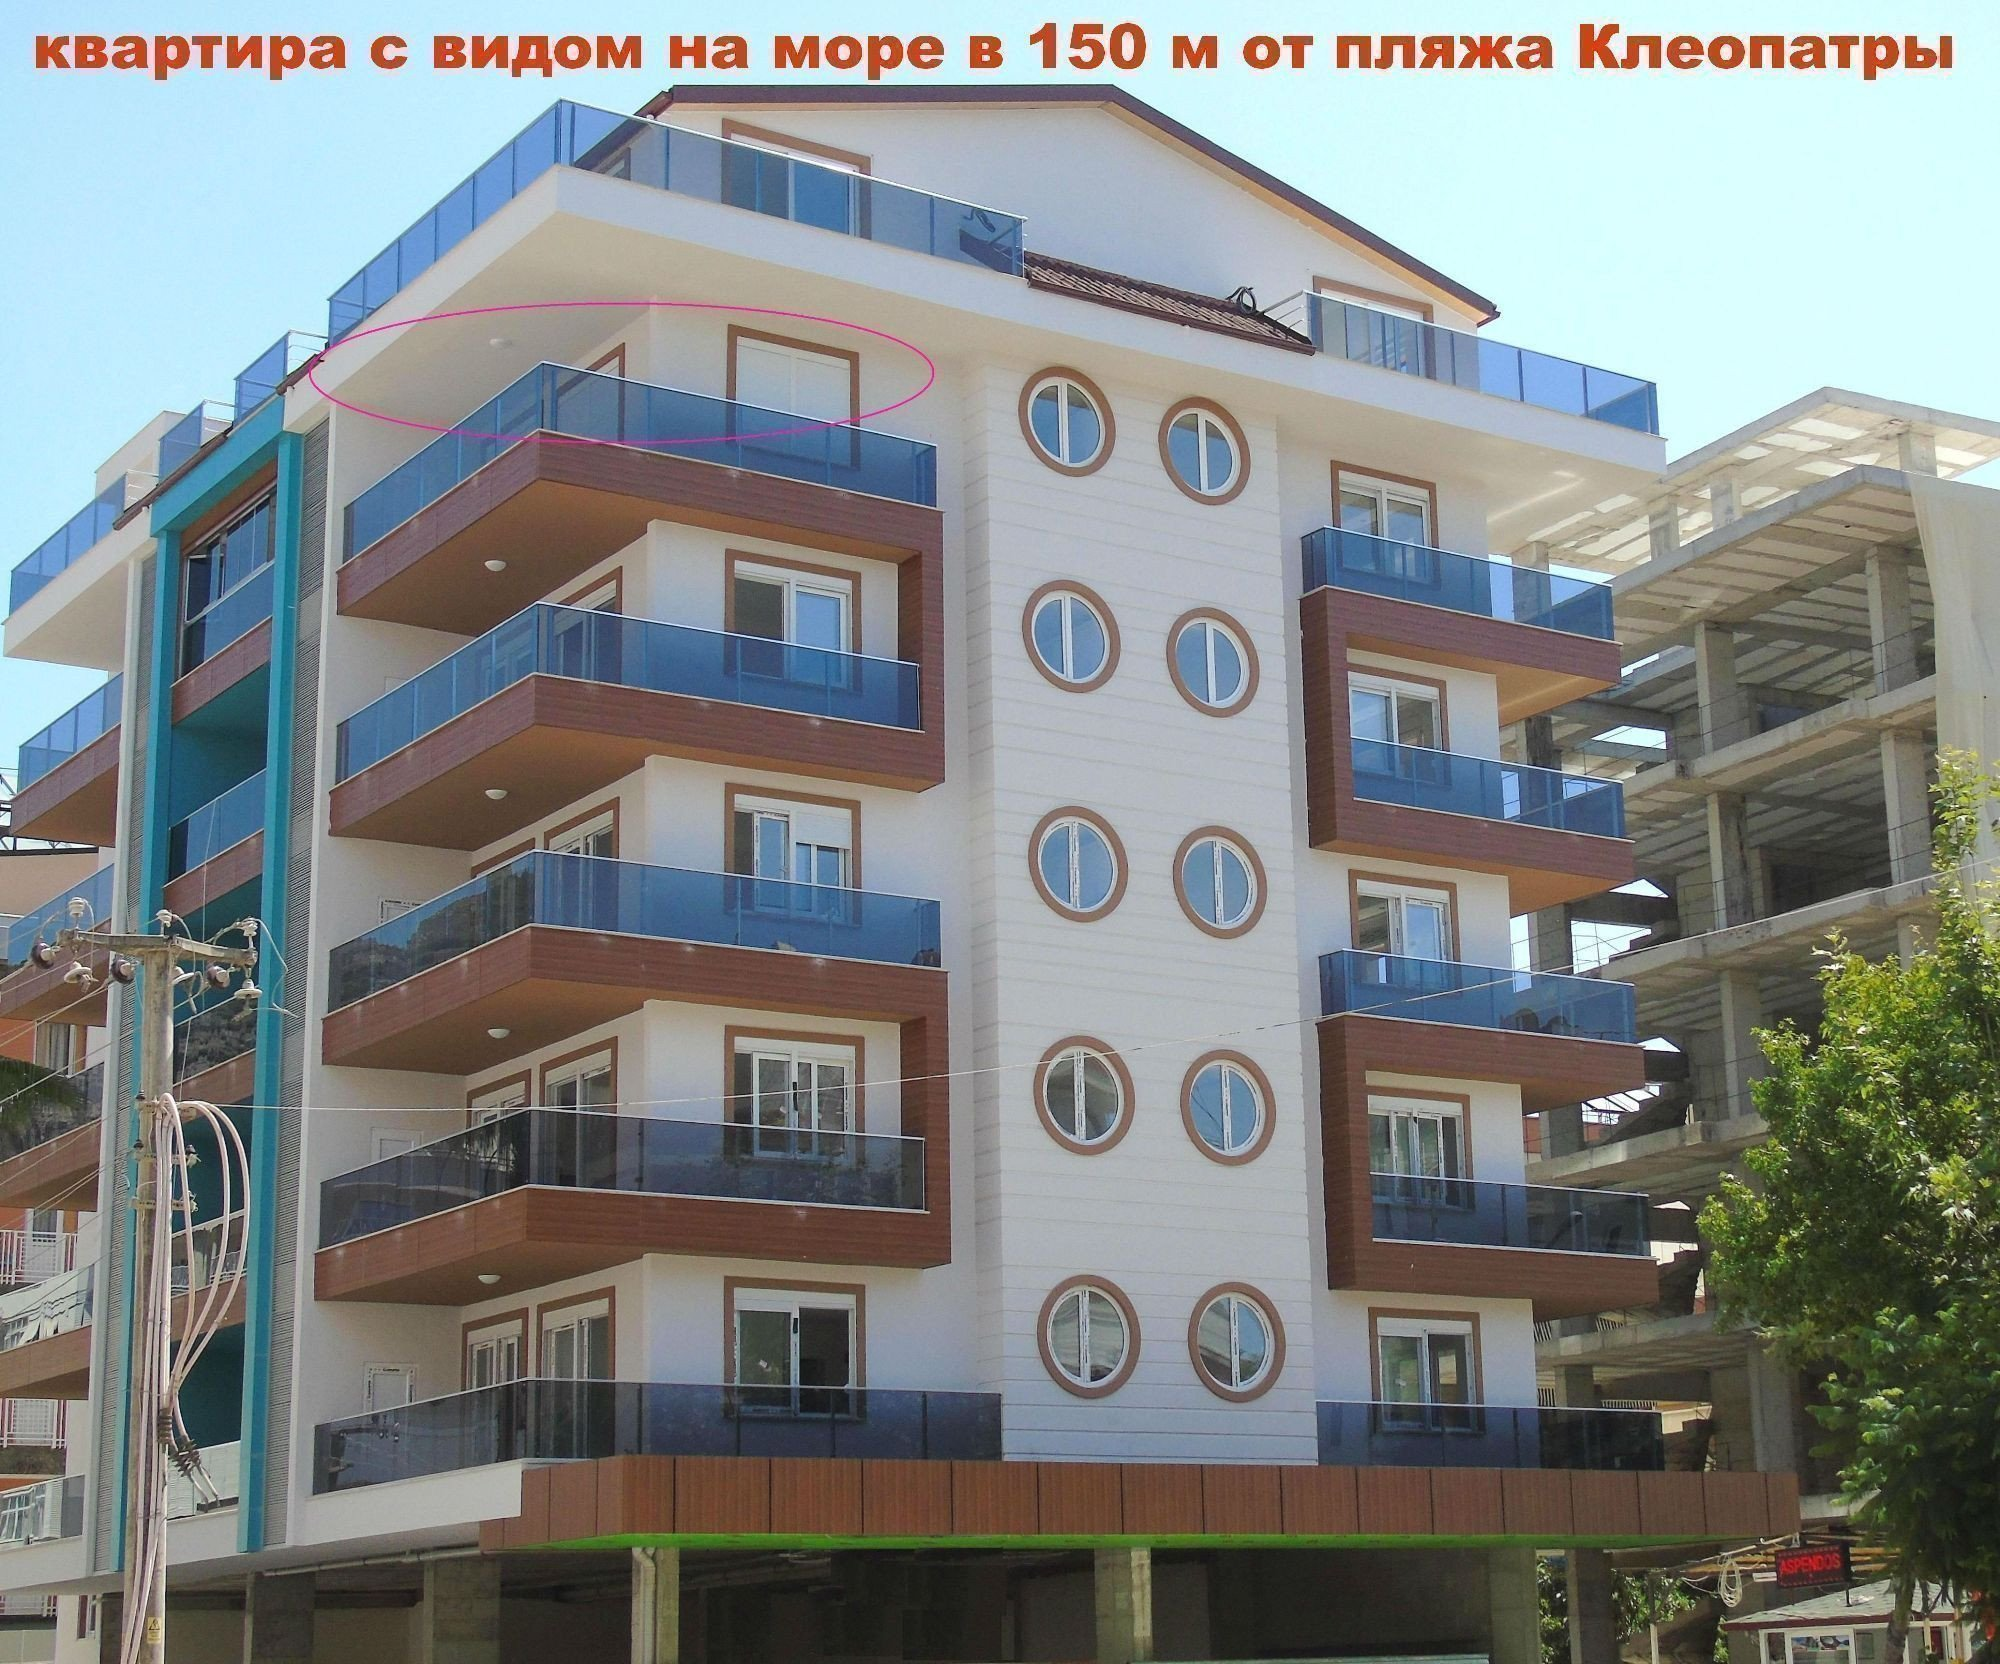 Sale property abroad Apartment 1 + 1 with a sea view 150m from the beach in Alanya